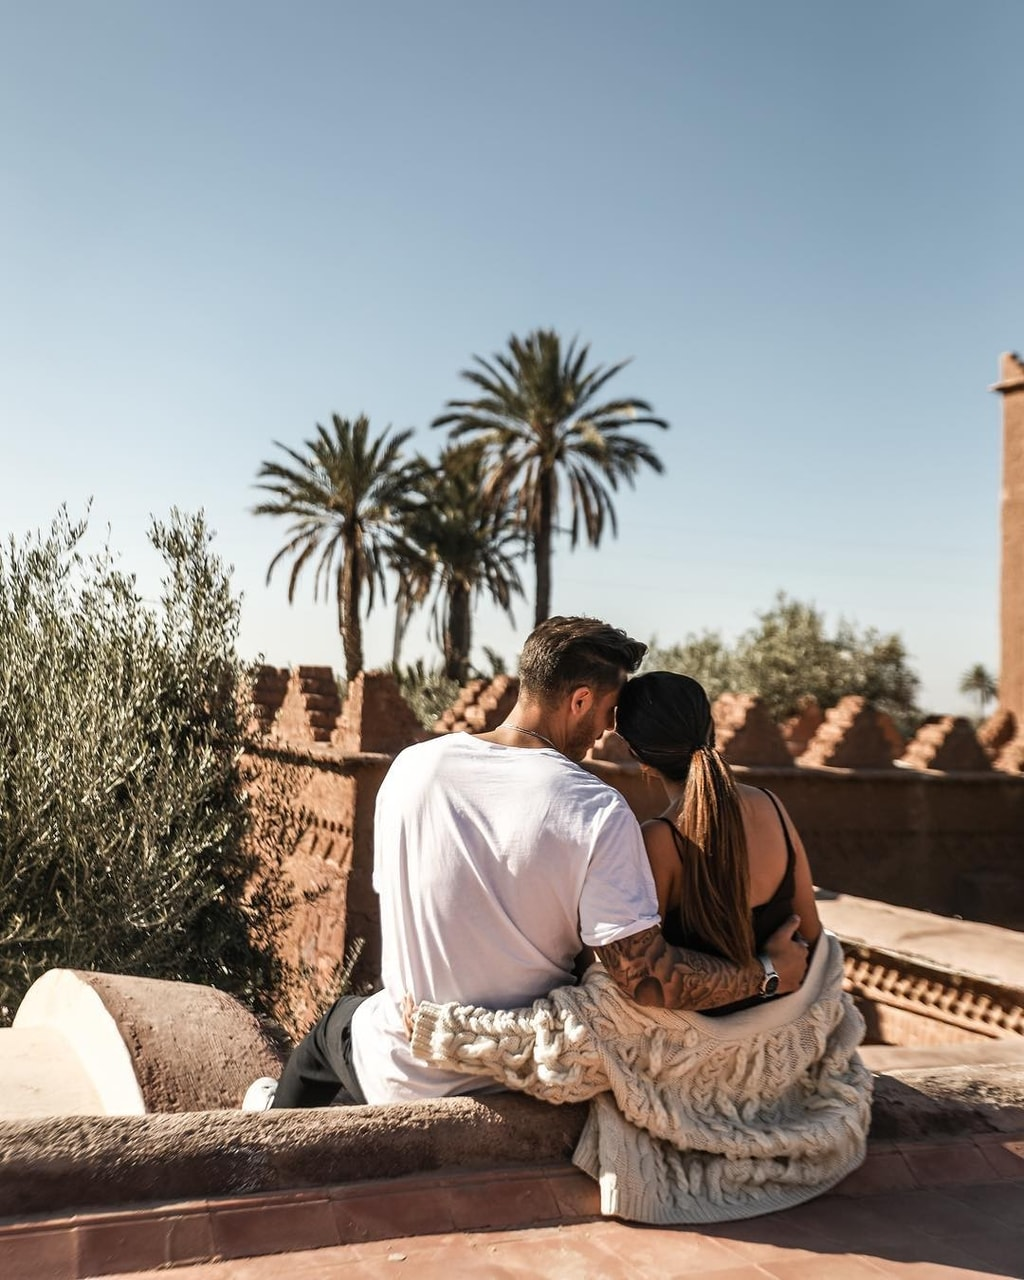 Morocco magic and mystery gay travel cultural tour